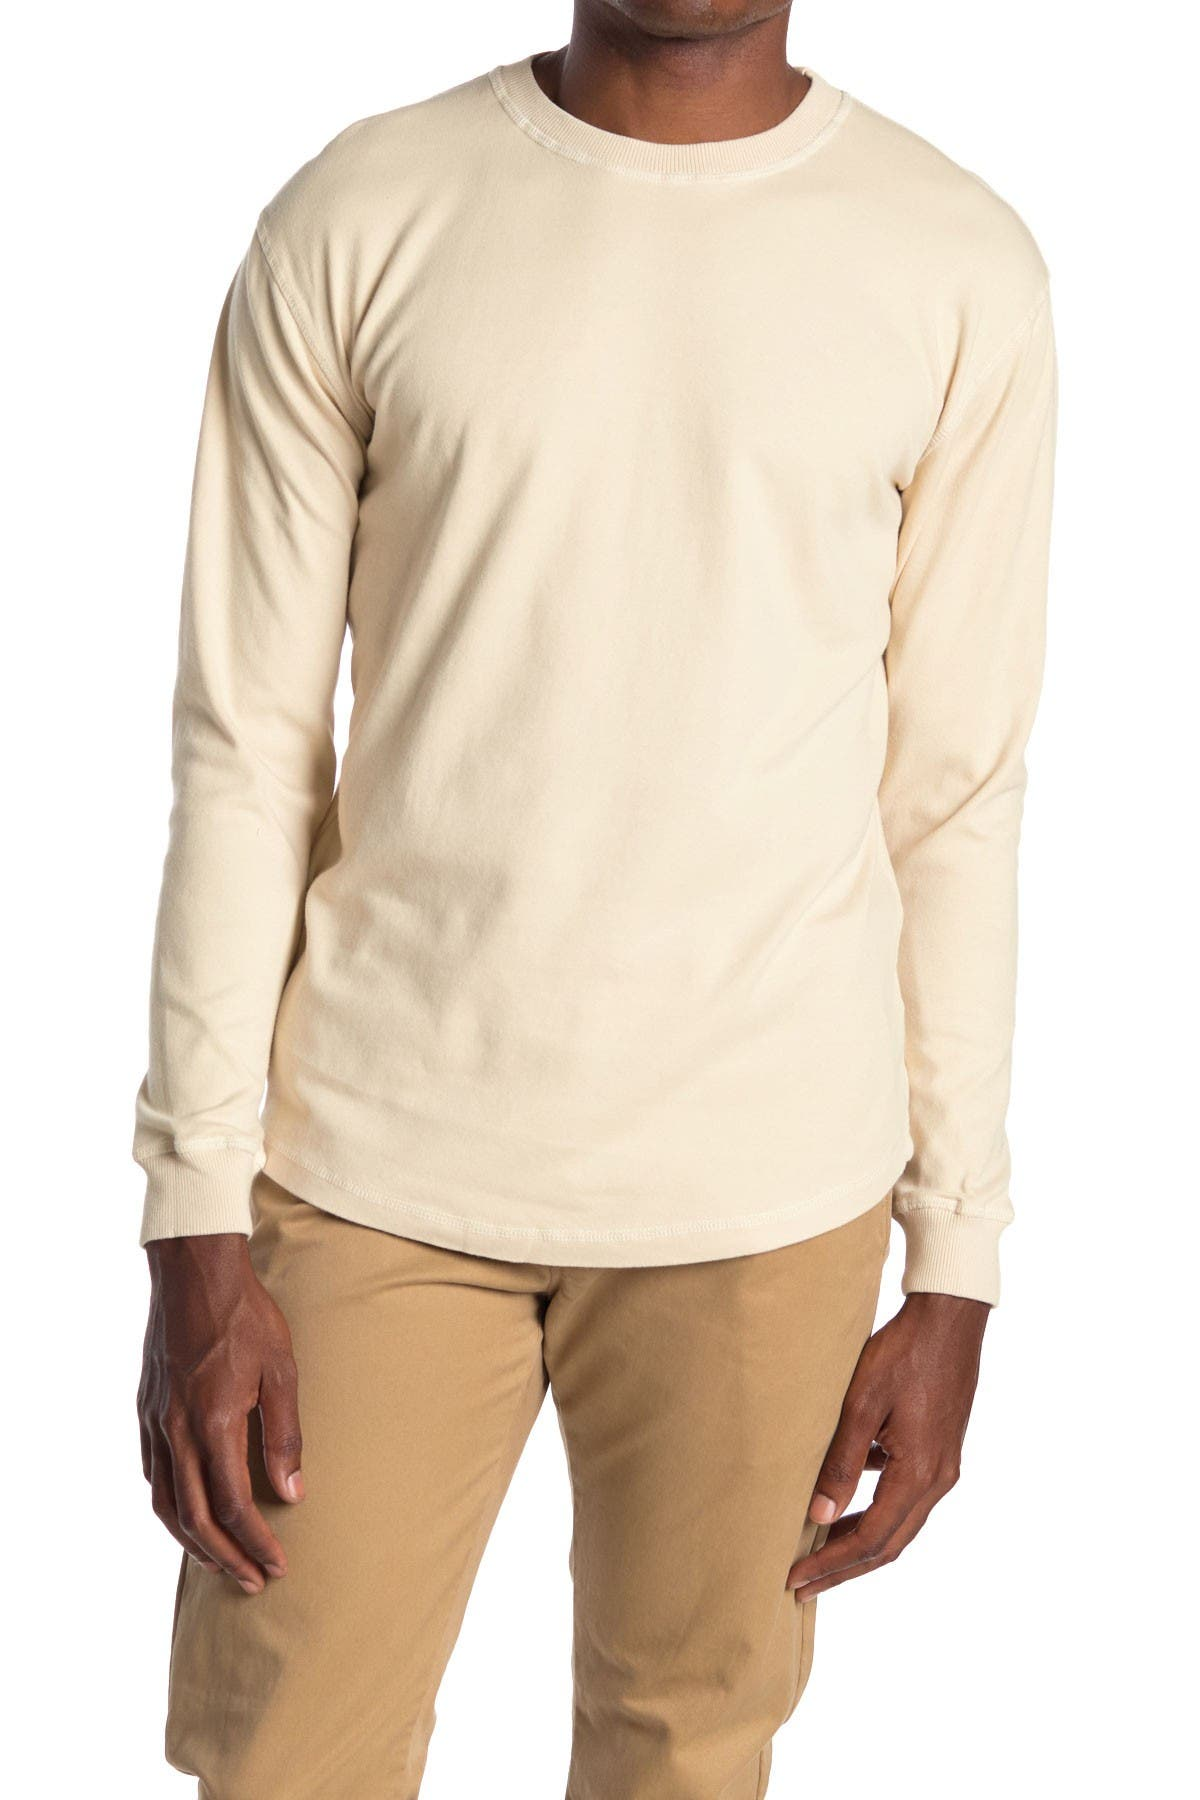 Image of American Needle Rooted Long Sleeve Pullover Sweater